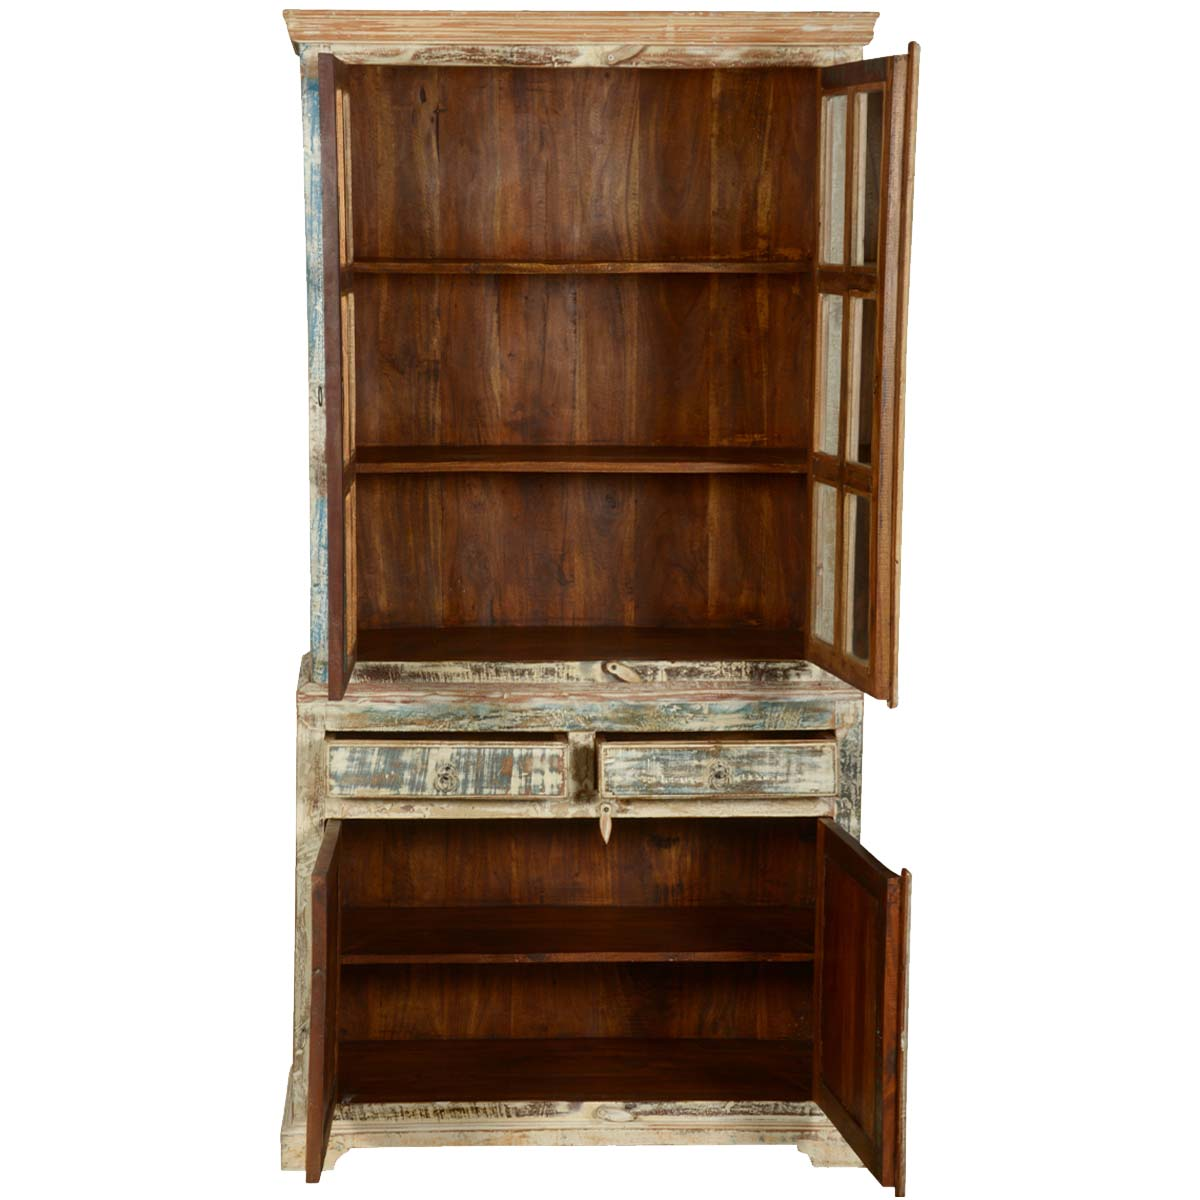 White Washed Reclaimed Wood Breakfront Hutch Buffet Cabinet : 72824 from www.sierralivingconcepts.com size 1200 x 1200 jpeg 113kB